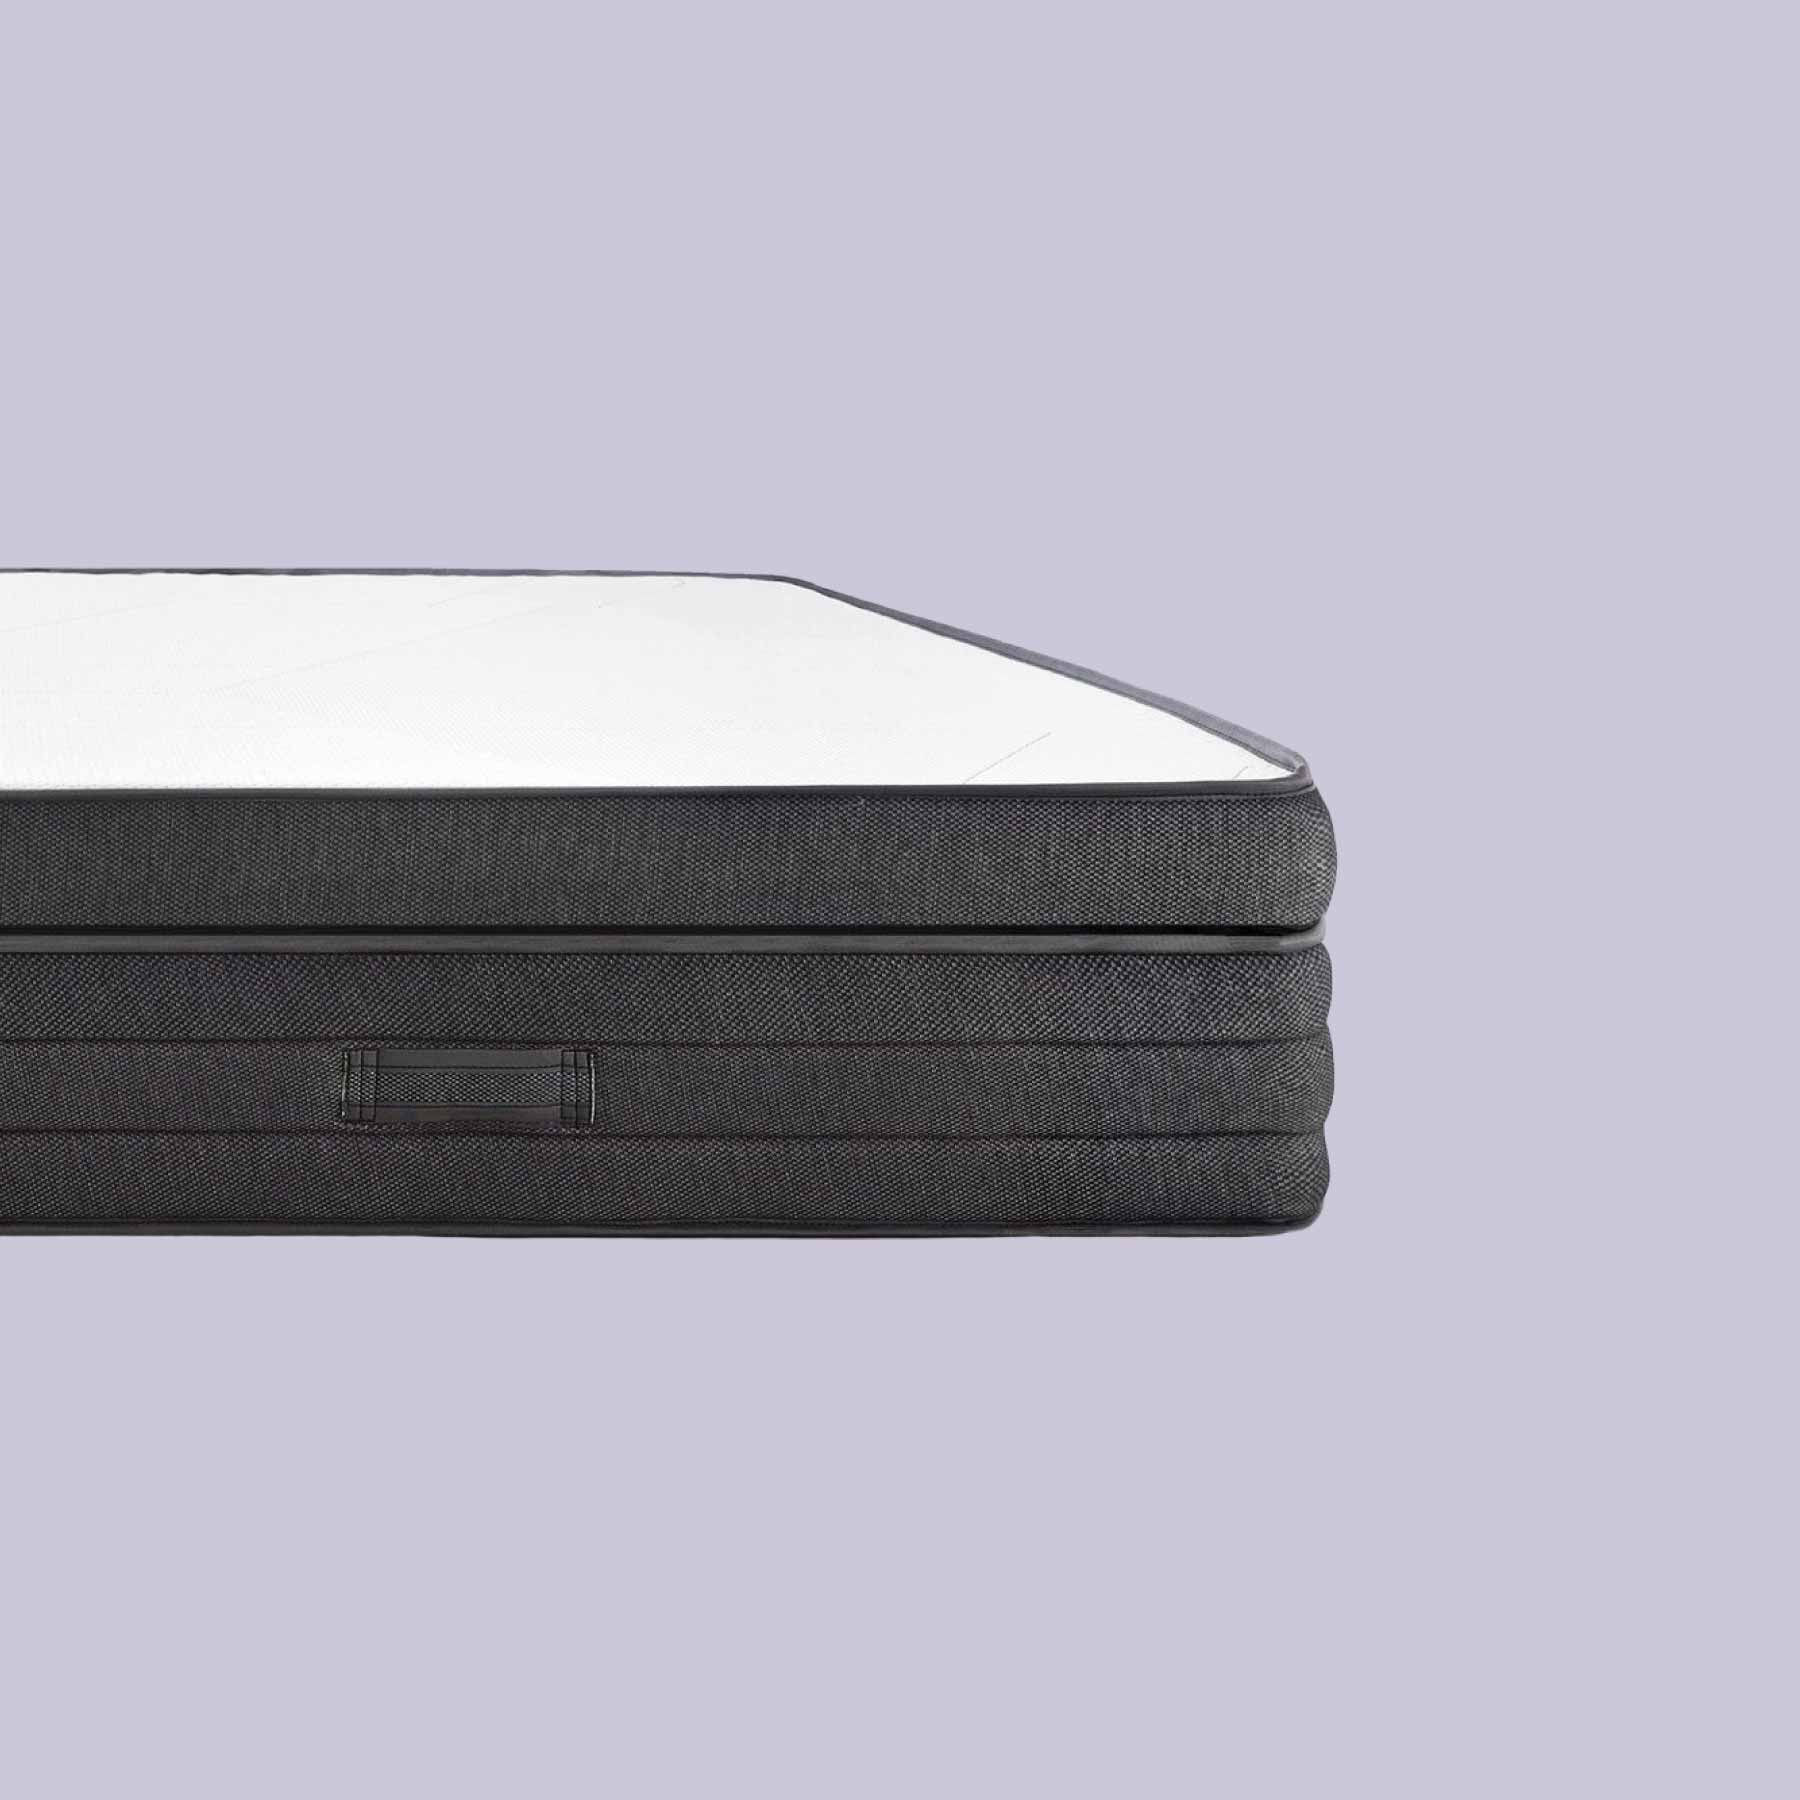 The Best Mattress for Sleeping Like Royalty Every Night